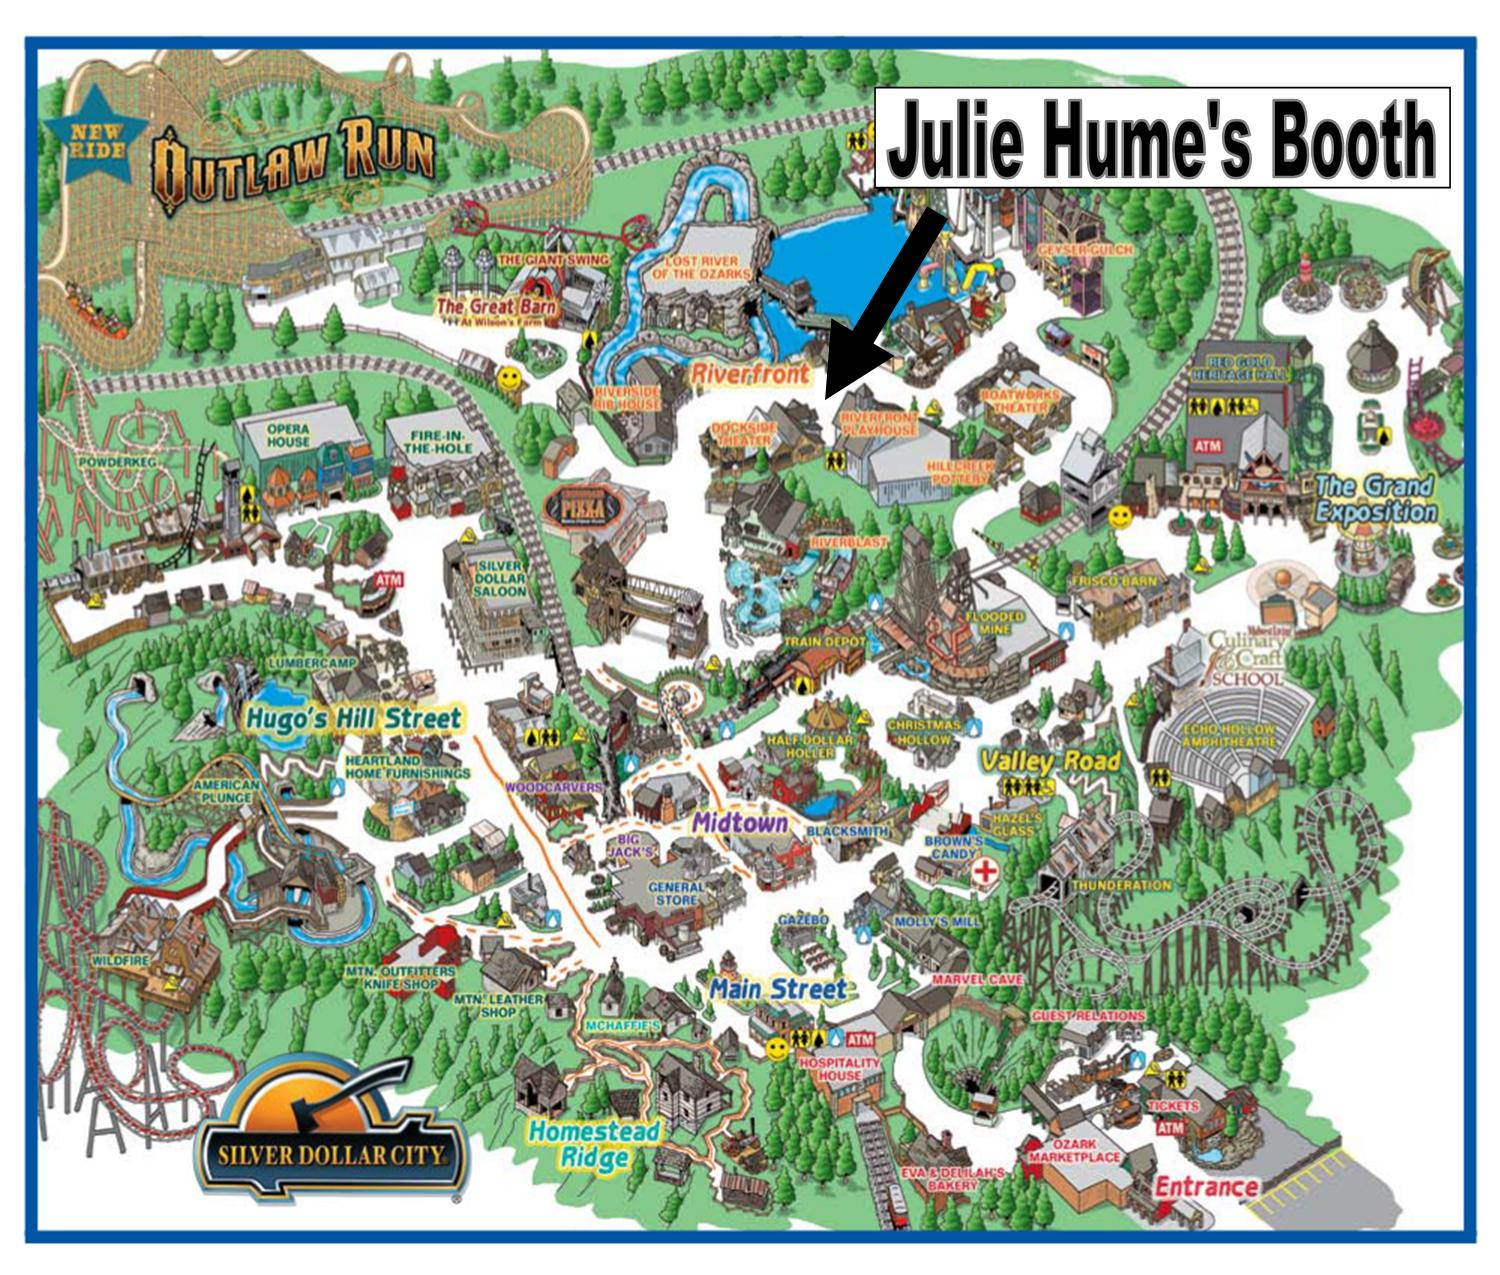 Silver Dollar City Fall Festival Julie Hume Art - City map of branson mo